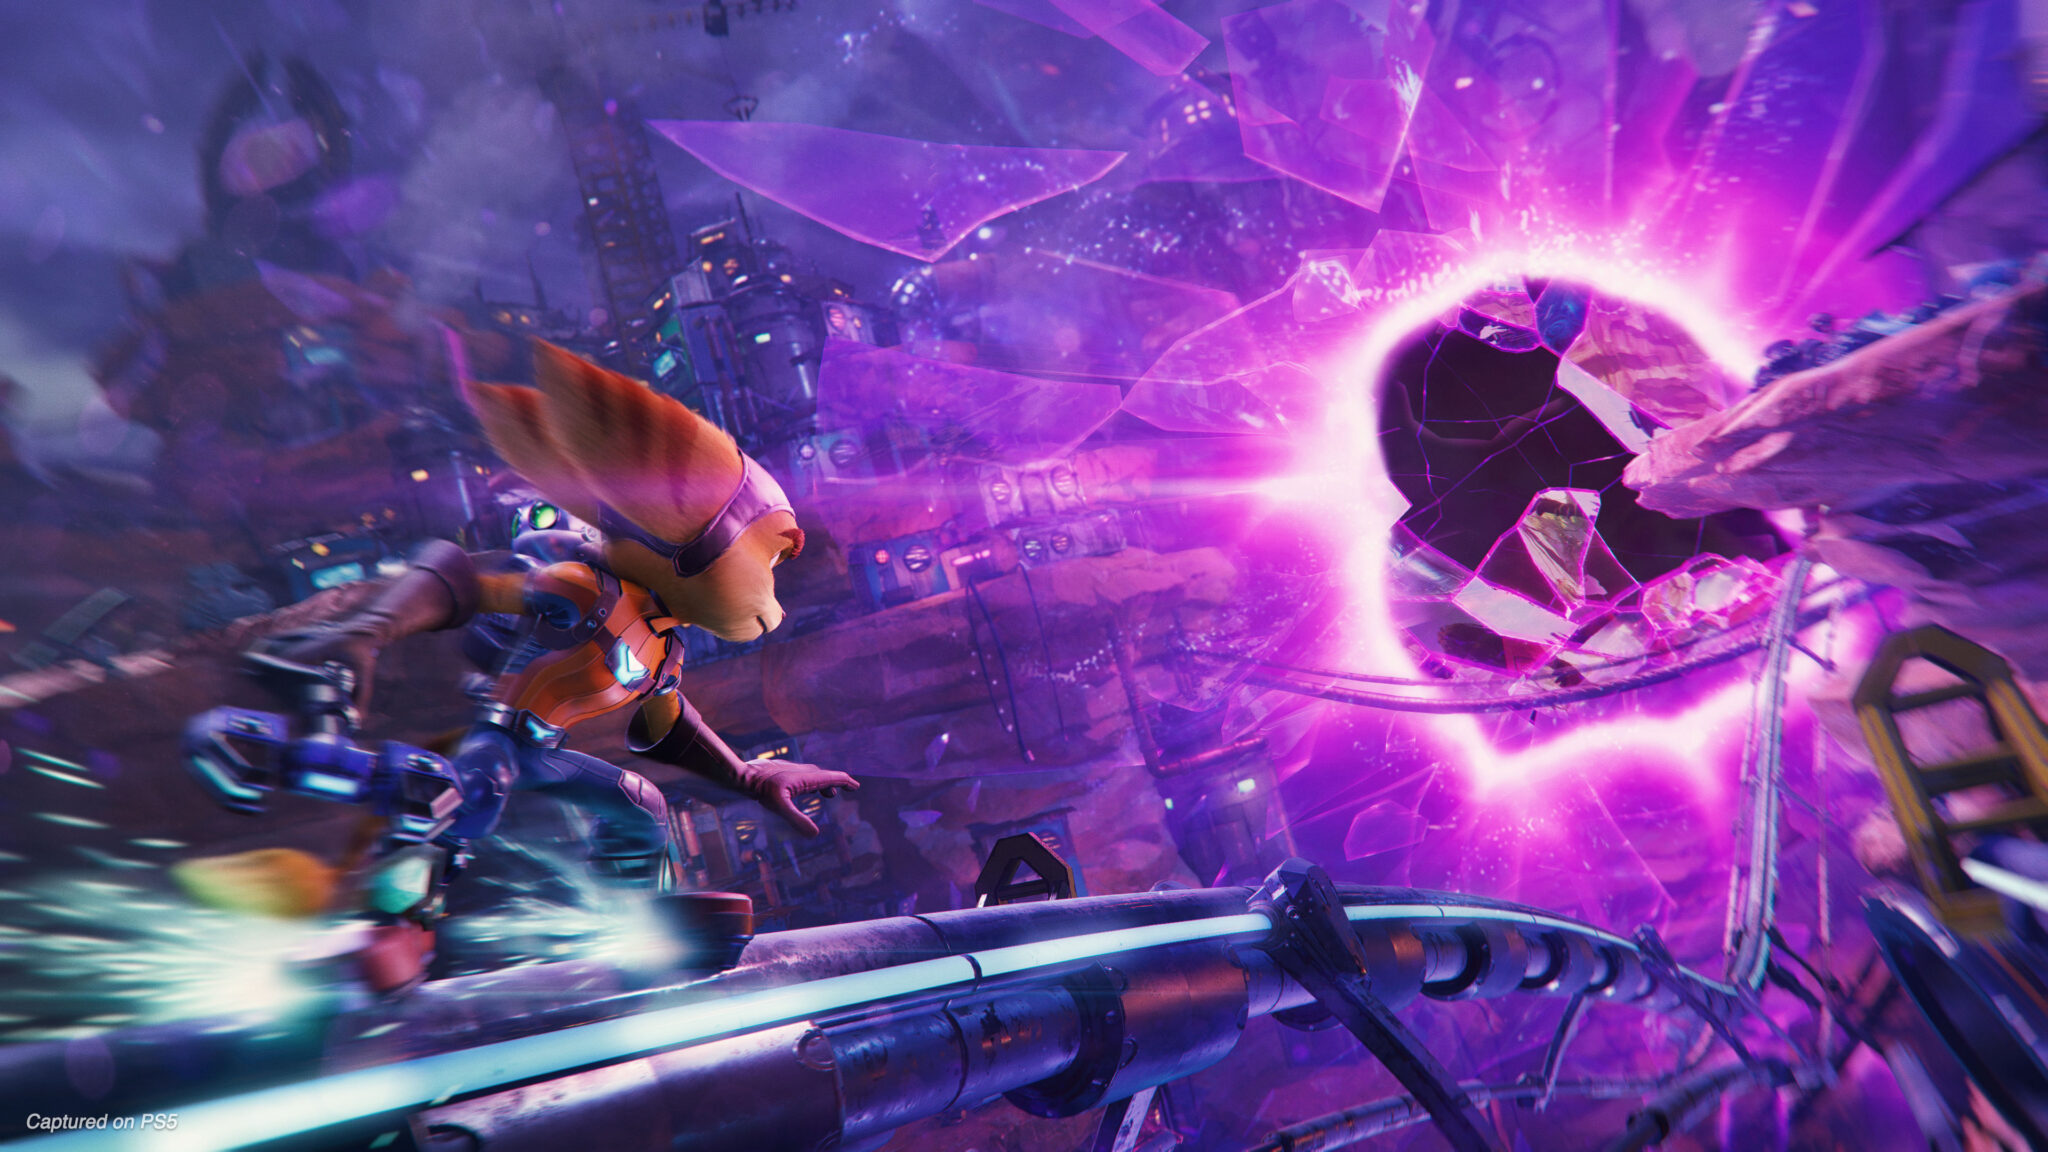 Who is Rivet in Ratchet and Clank: Rift Apart? - The Click